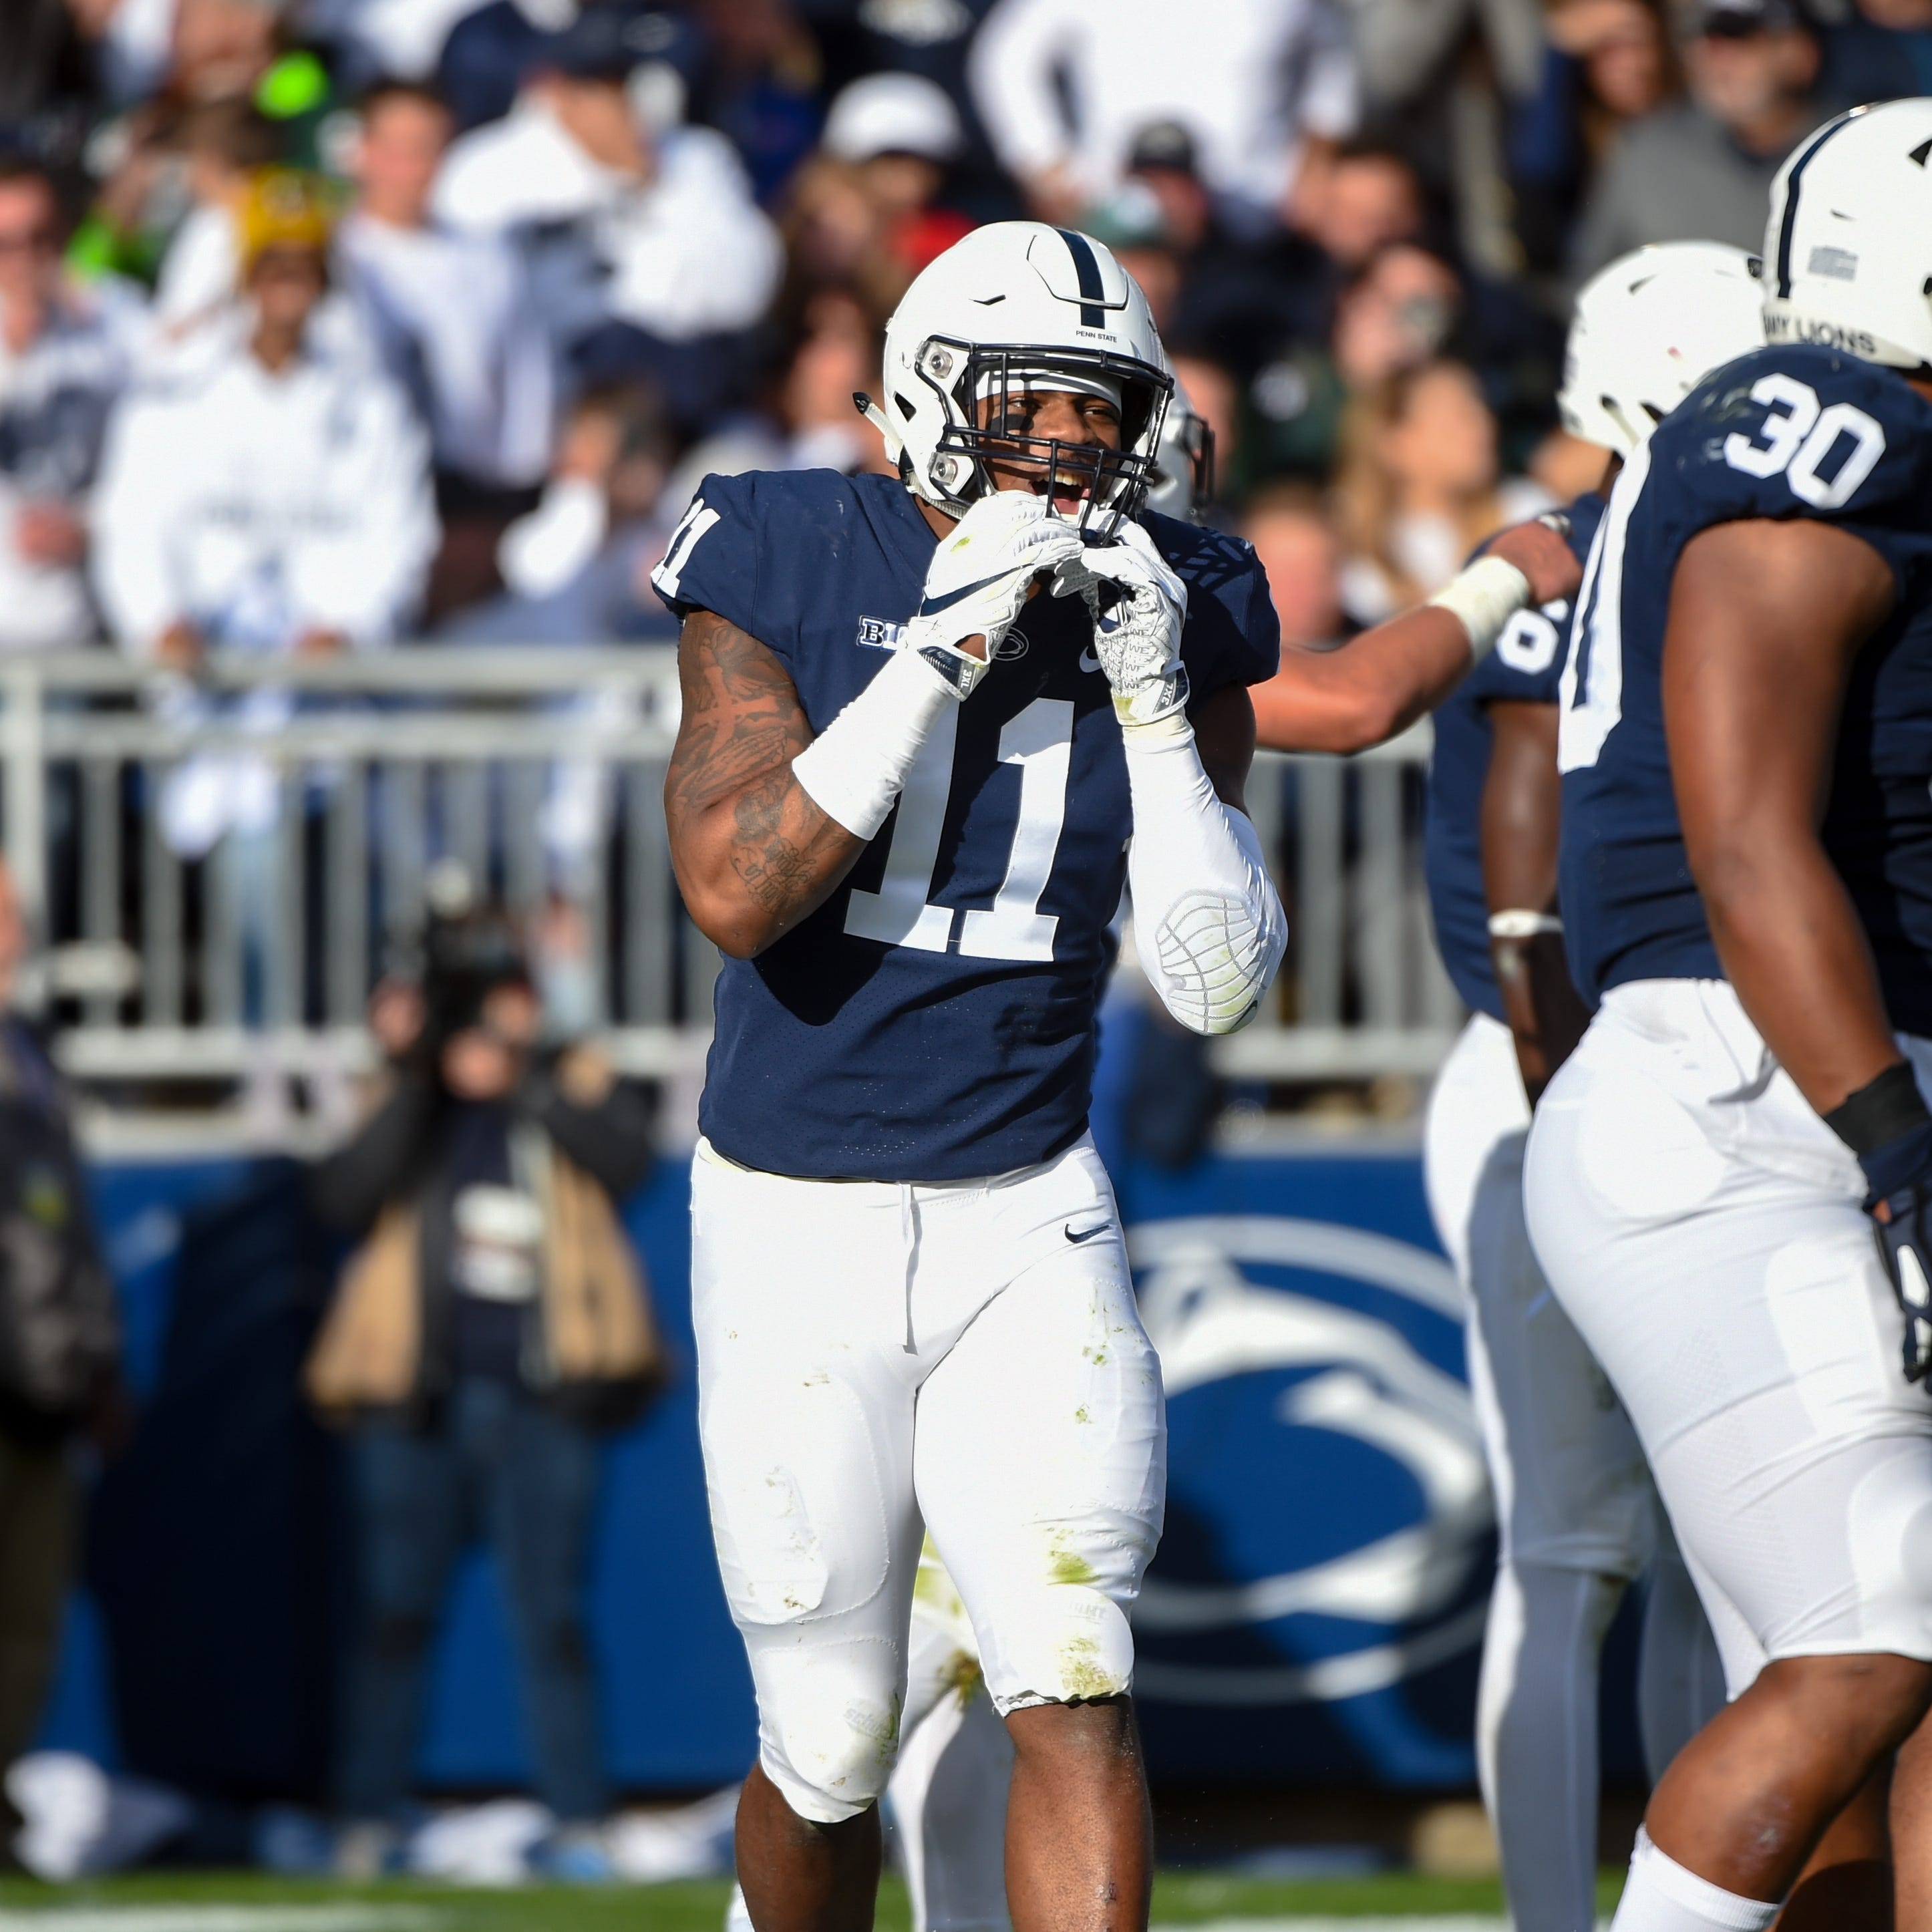 Penn State's Micah Parsons Watch vs. Indiana: Rookie recovers in biggest day yet